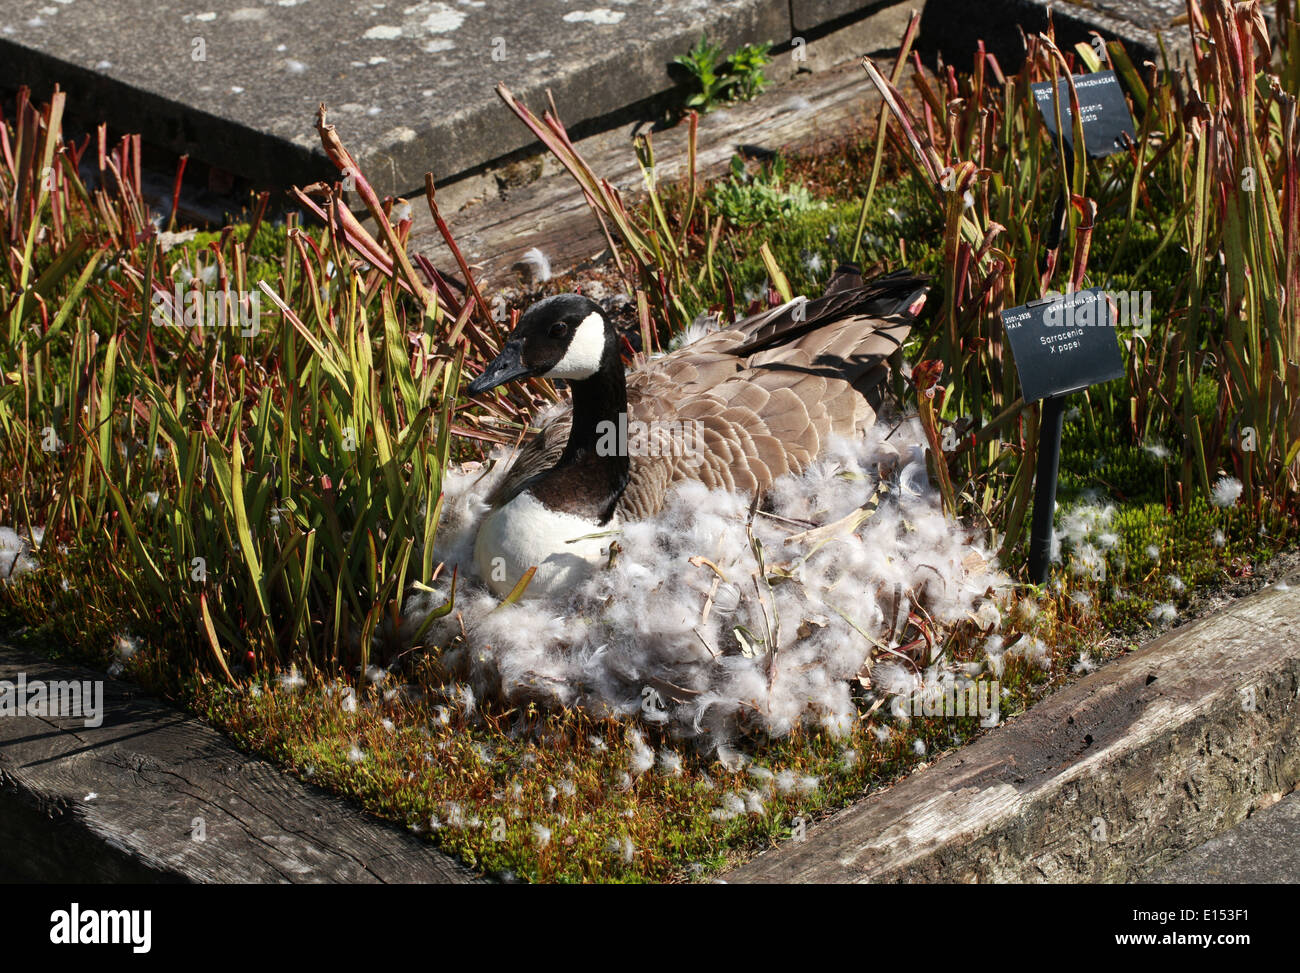 Canada Goose vest online price - Goose Flower Stock Photos & Goose Flower Stock Images - Alamy